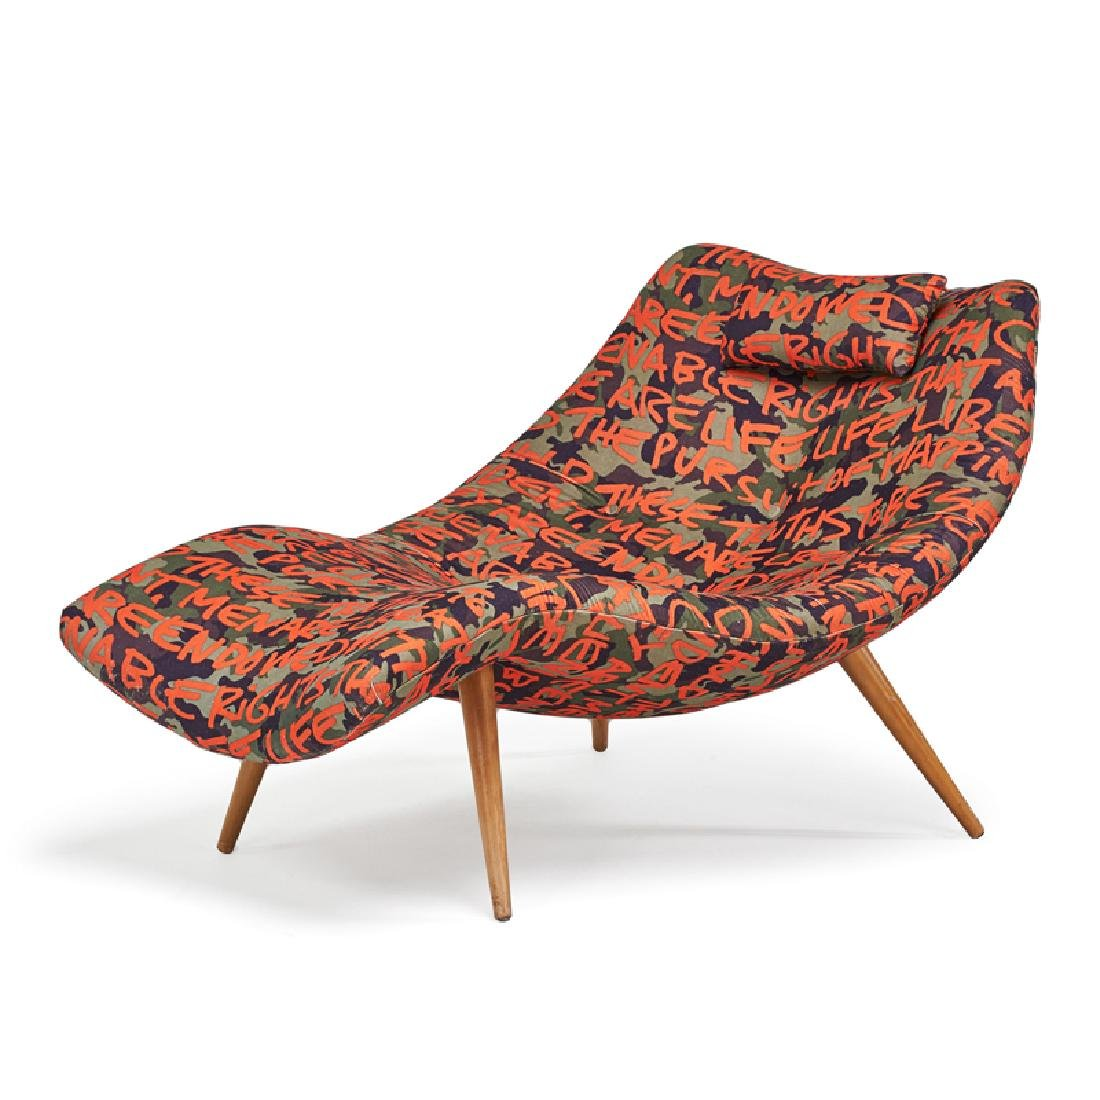 ADRIAN PEARSALL (attr.) LOUNGE CHAIR